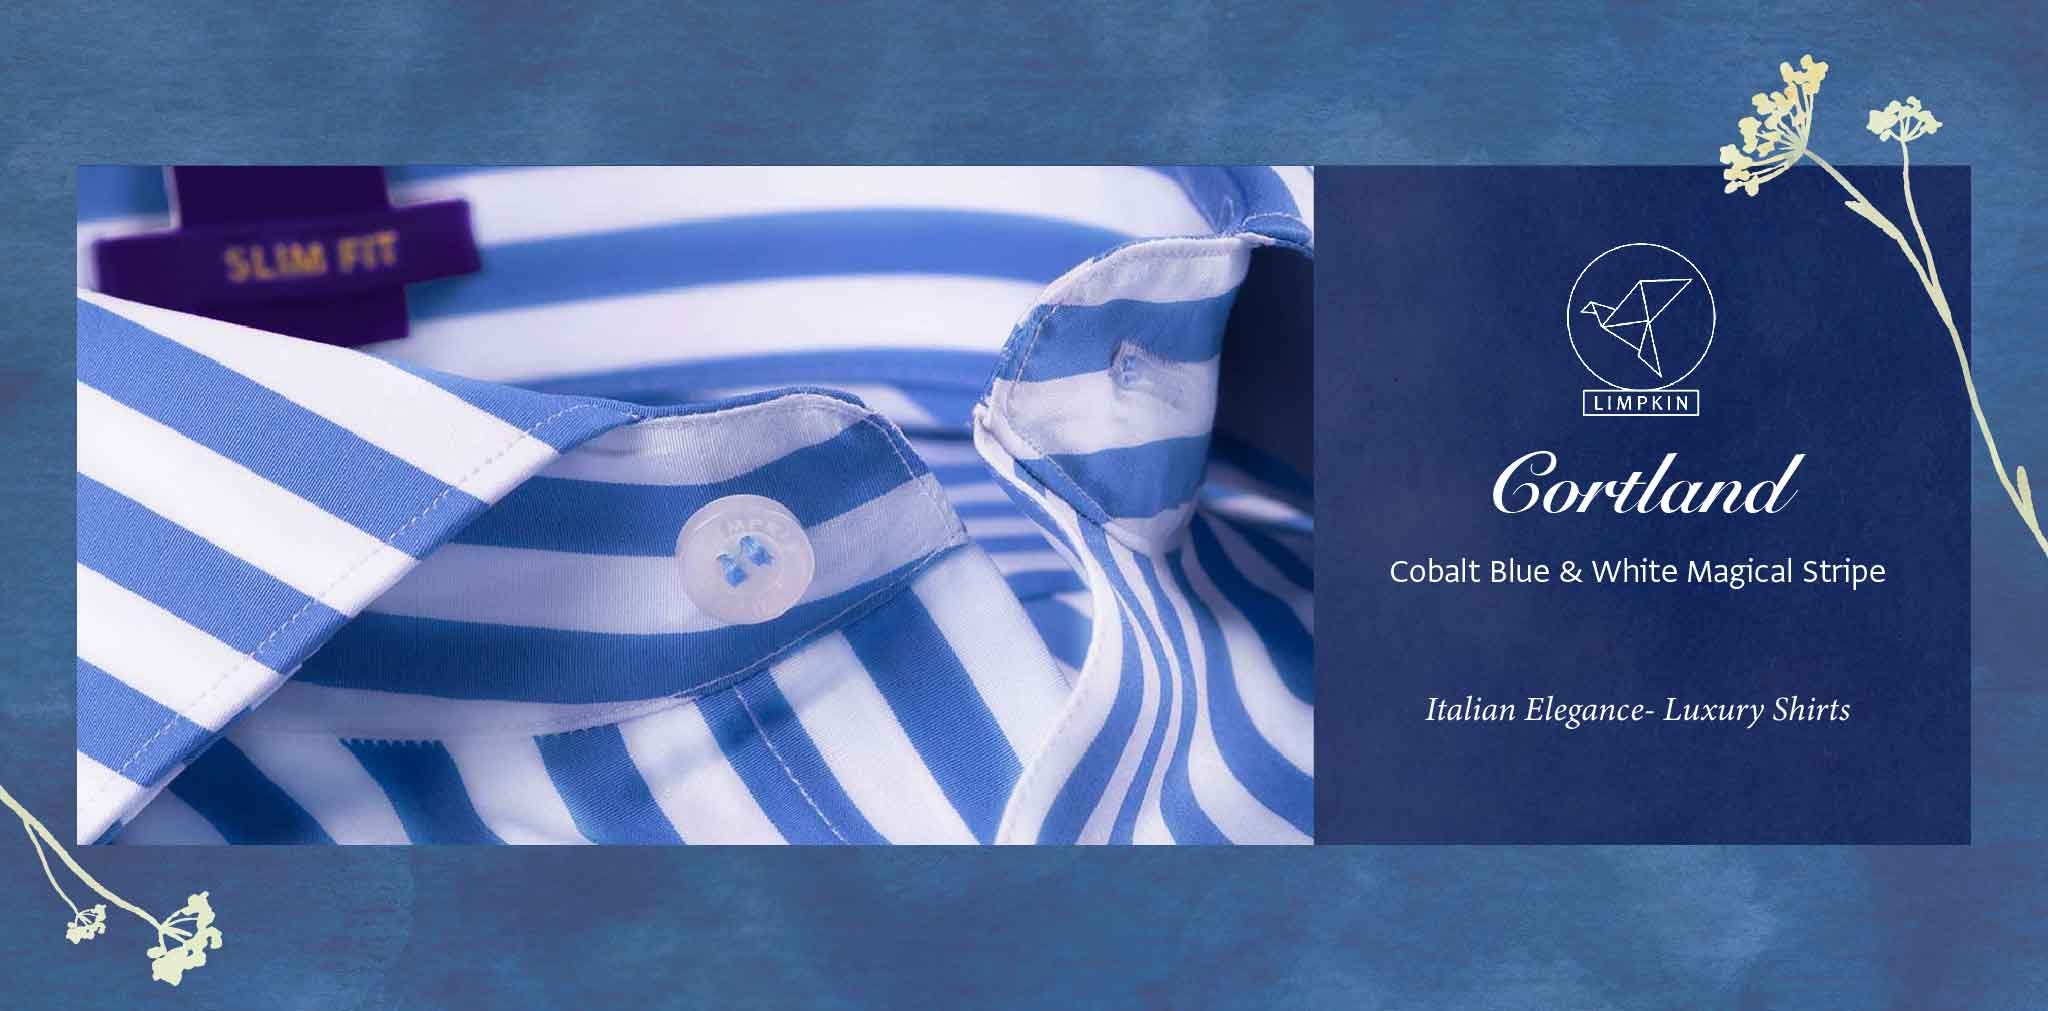 Cortland- Cobalt Blue & White Magical Stripe- 2 Ply Pure Egyptian Giza Cotton- Delivery from 17th May - Banner